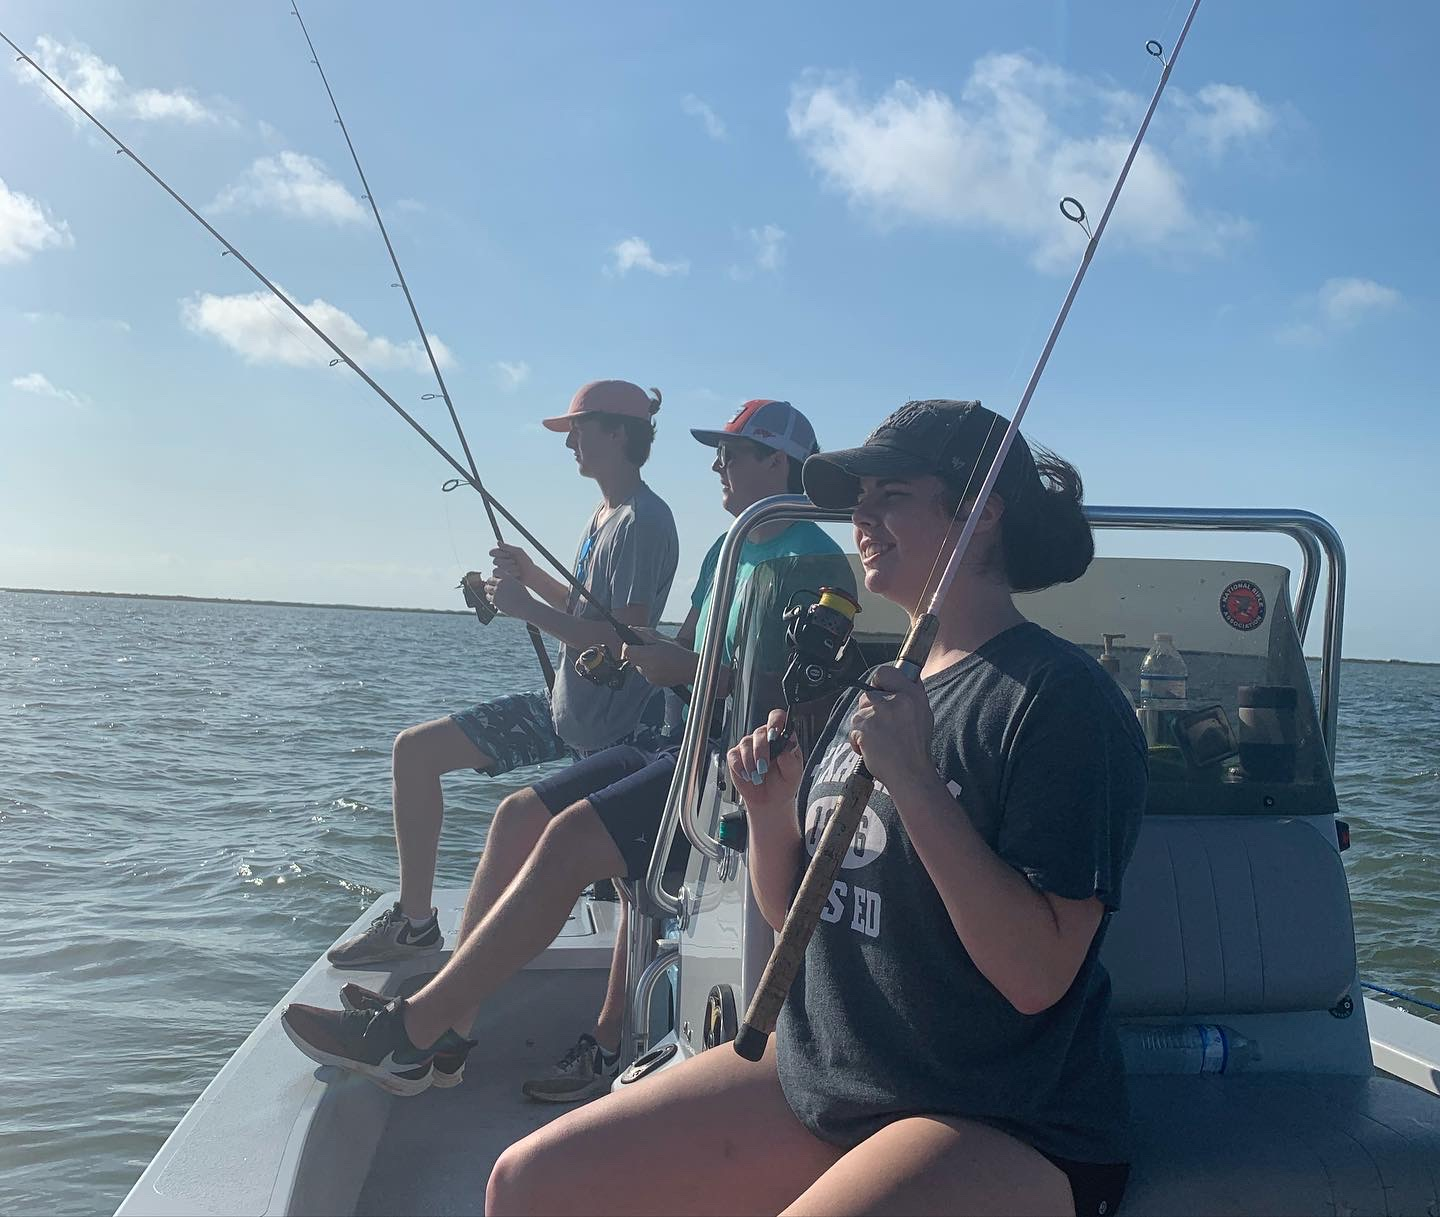 three teenage anglers casting rods on a fishing boat